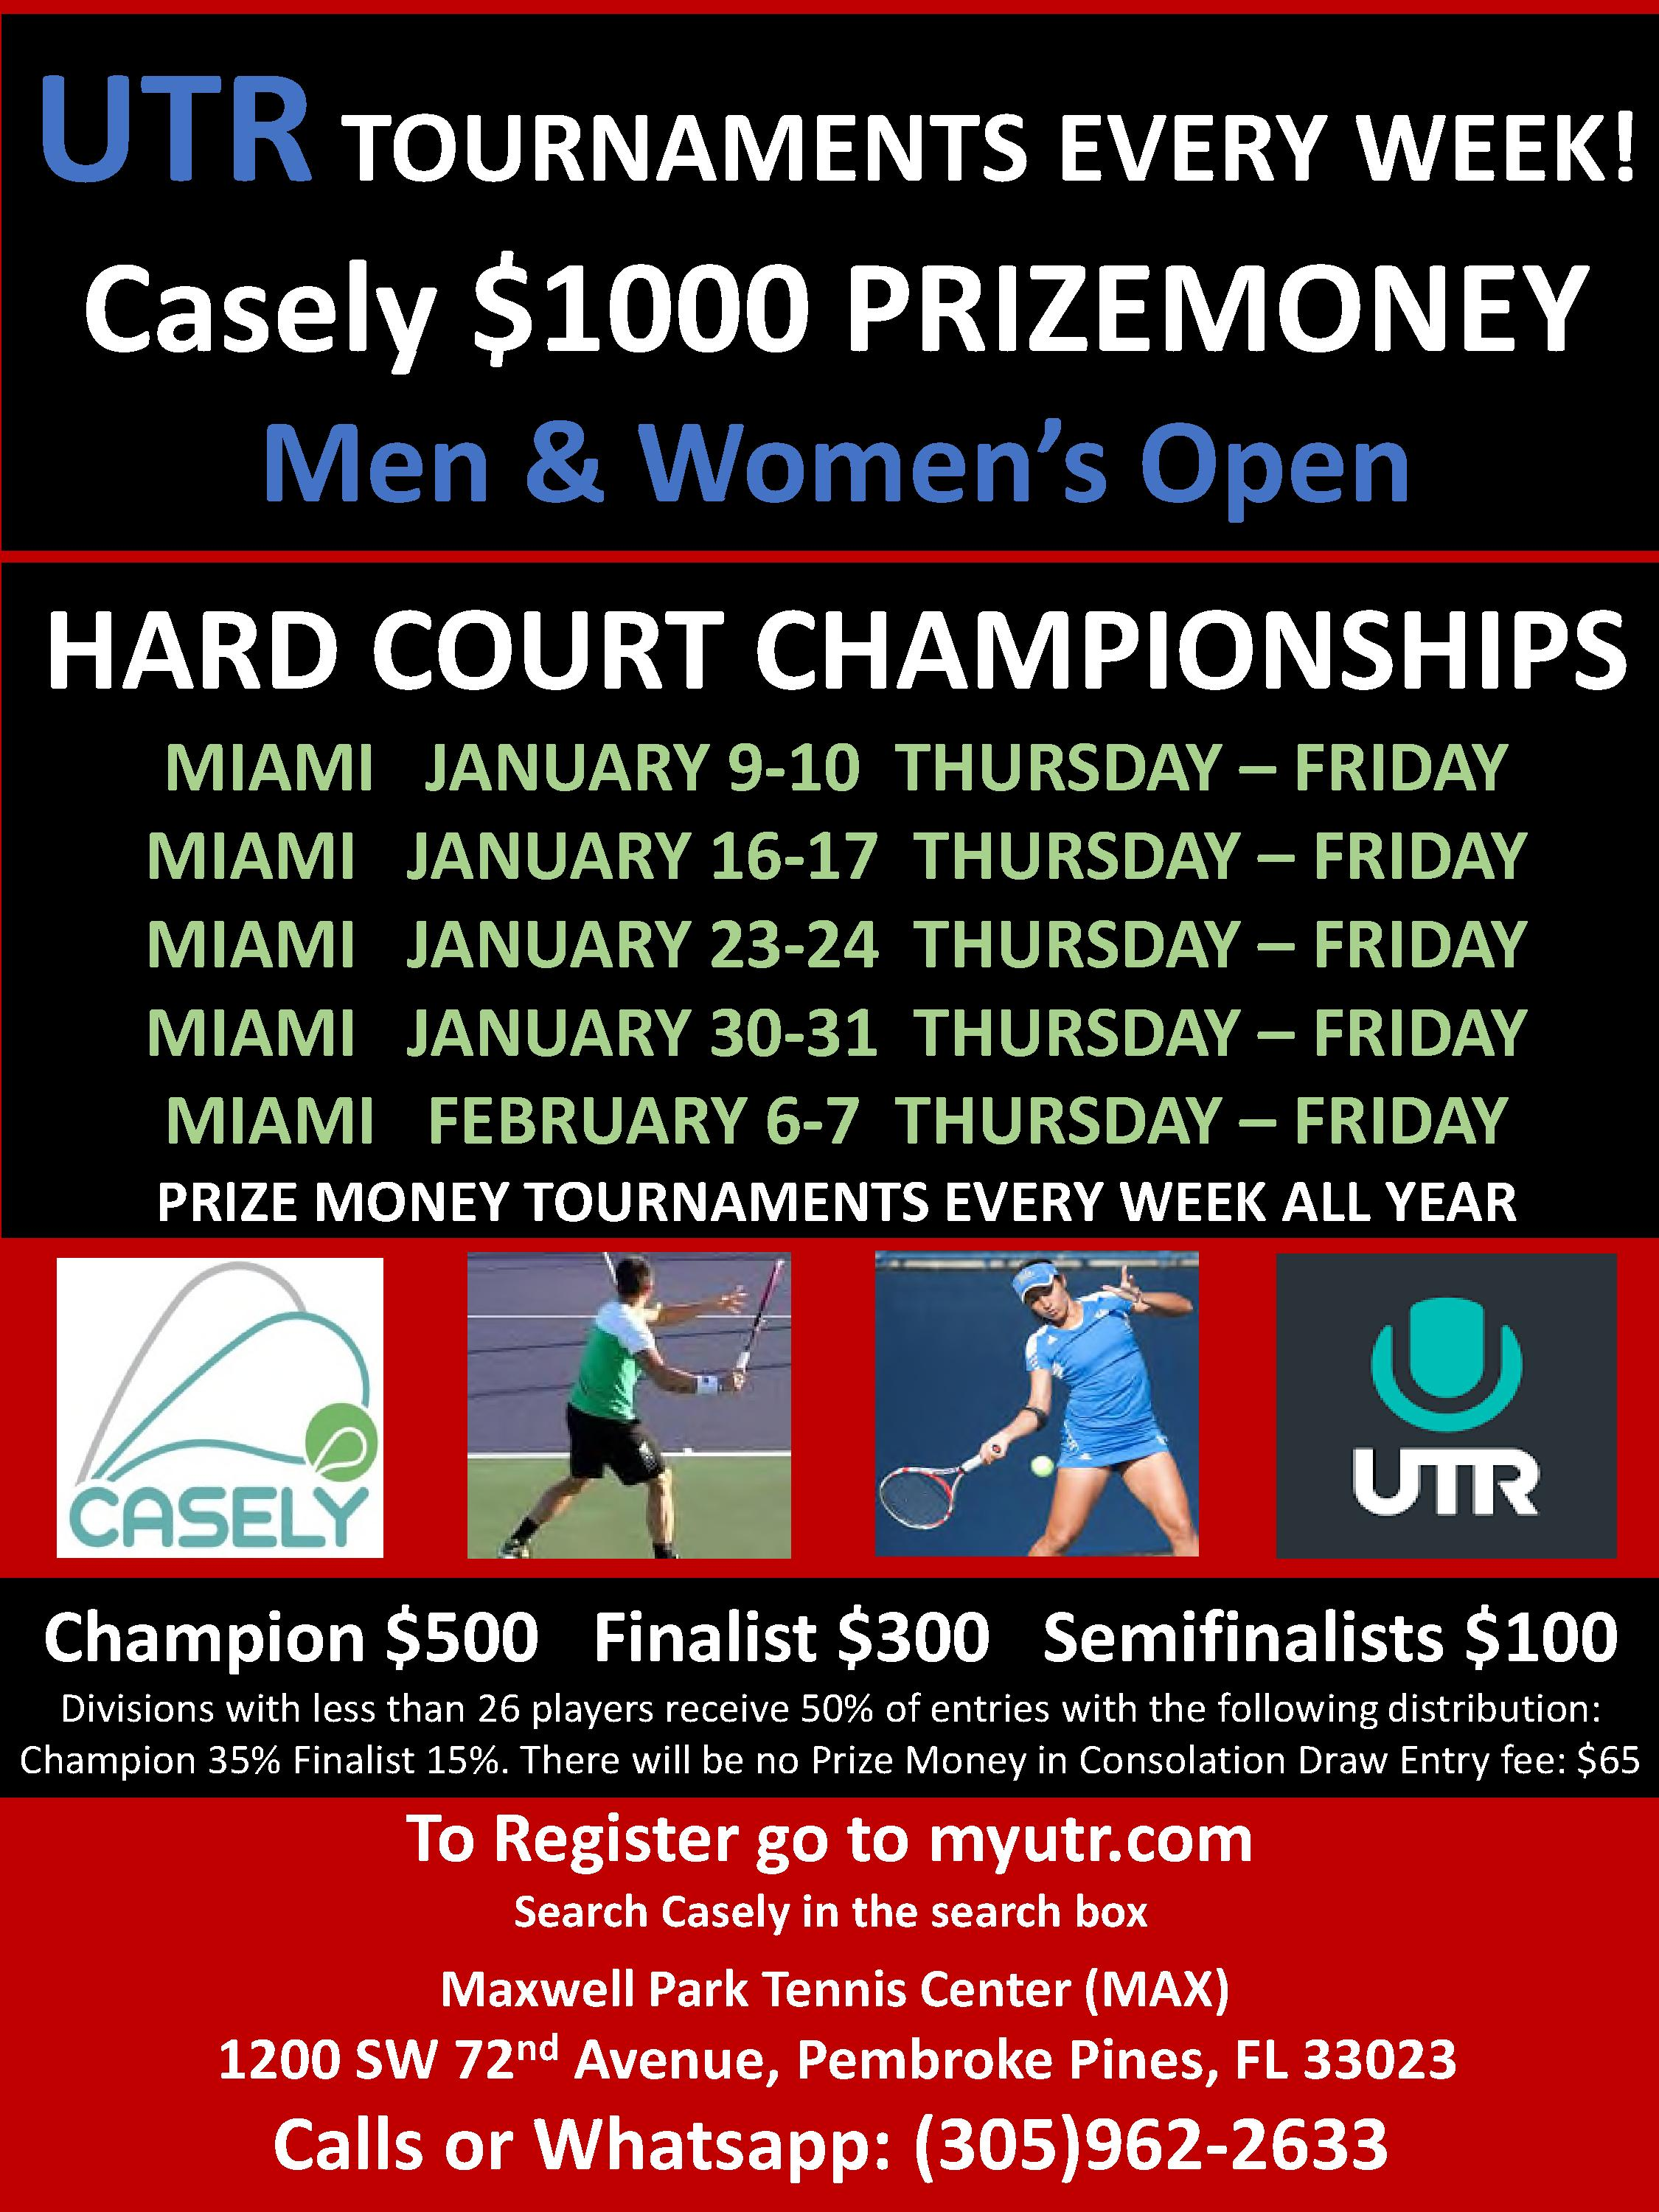 Casely Prize Money Championships